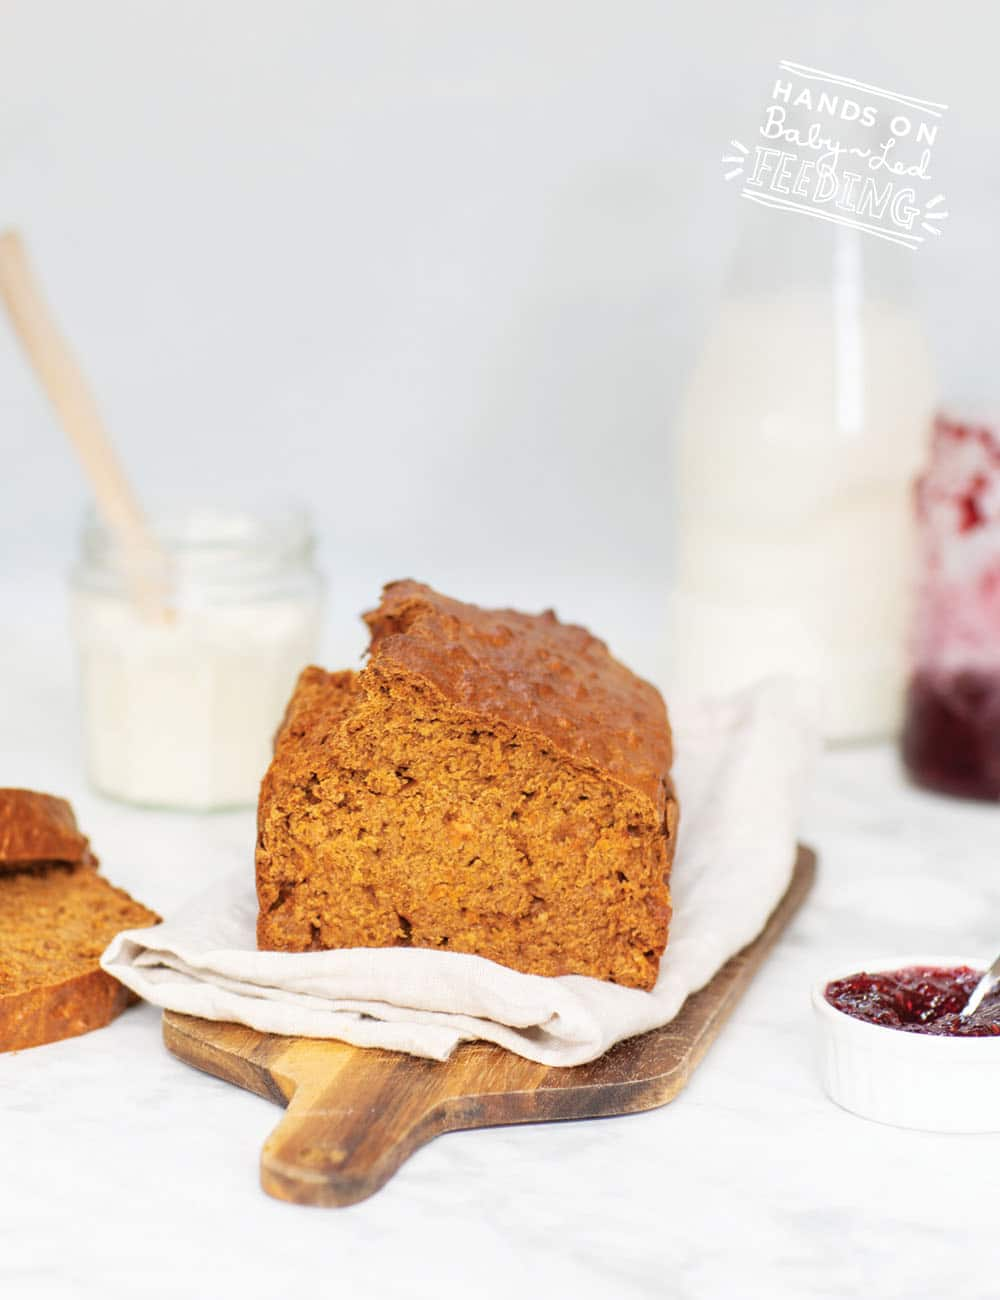 Healthier Sweet Potato and Cinnamon Bread made with roasted sweet potato and lightly sweetened with maple syrup. Excellent for baby led weaning, school lunches, and holiday treats. Simple recipe that is refined sugar free and easy to make. #breadrecipe #sweetpotato #backtoschool #babyledweaning #babyledfeeding